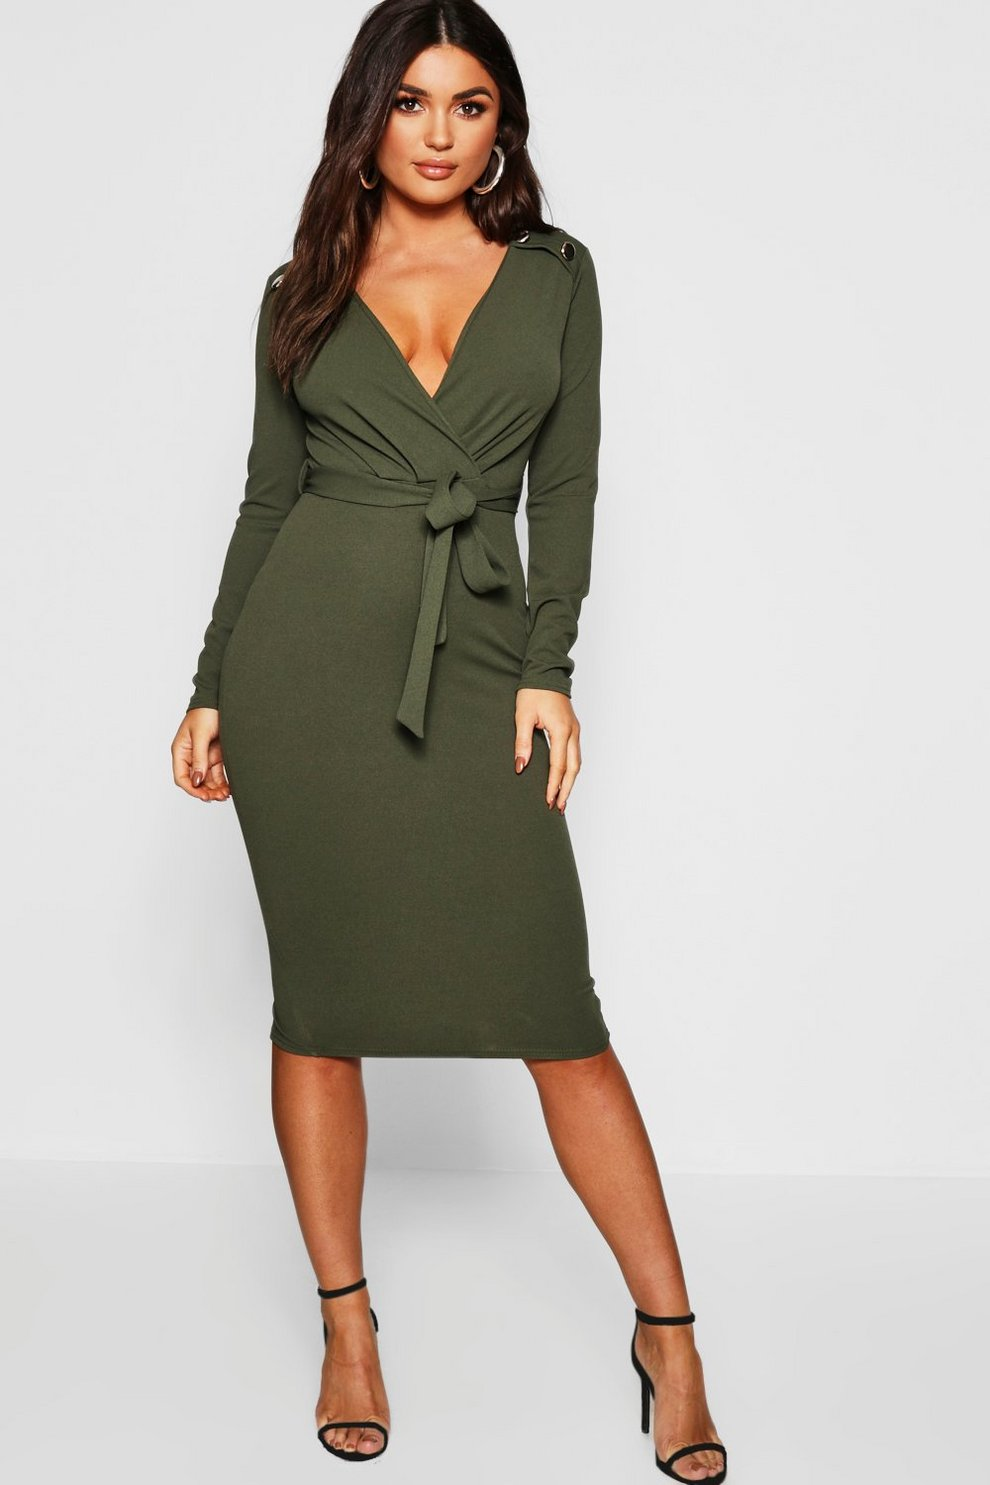 d5c27afc1110 Womens Khaki Button Shoulder Belted Midi Dress. Hover to zoom